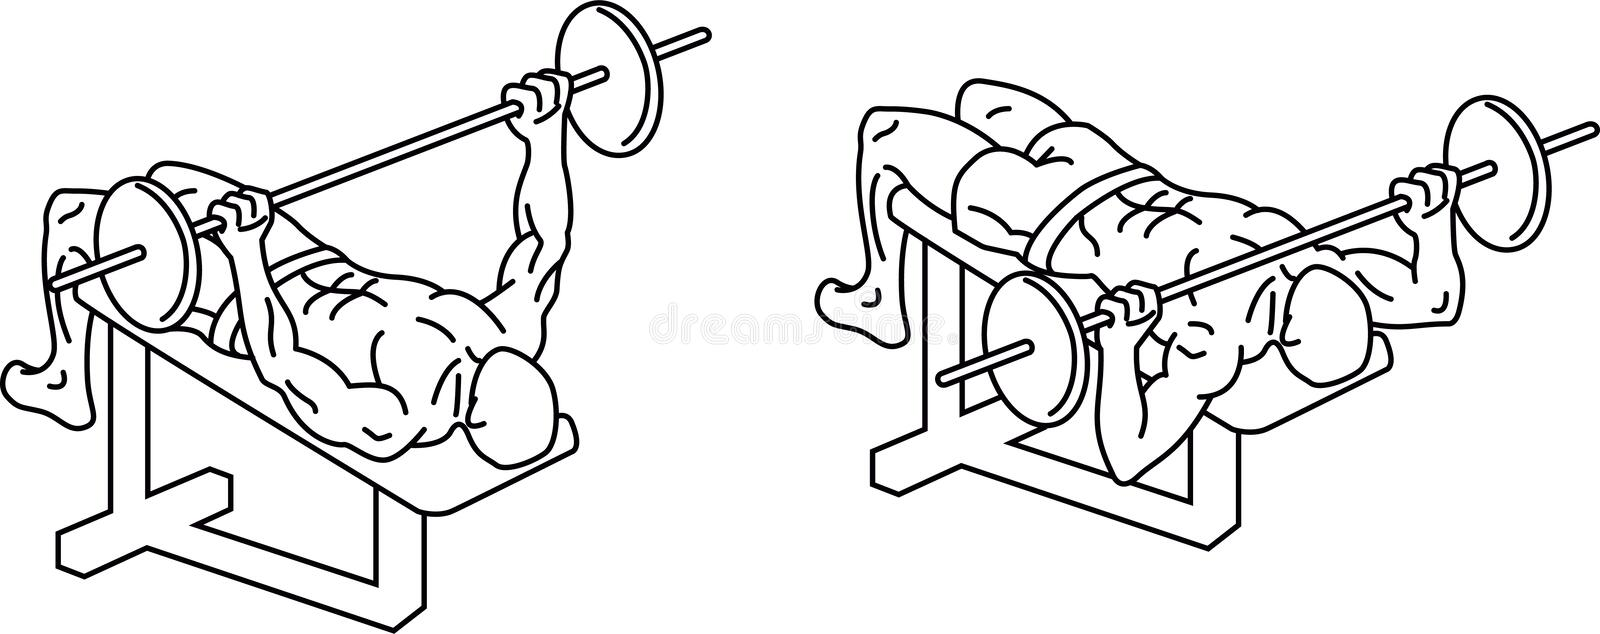 Bench press. Exercises and training with weights royalty free illustration